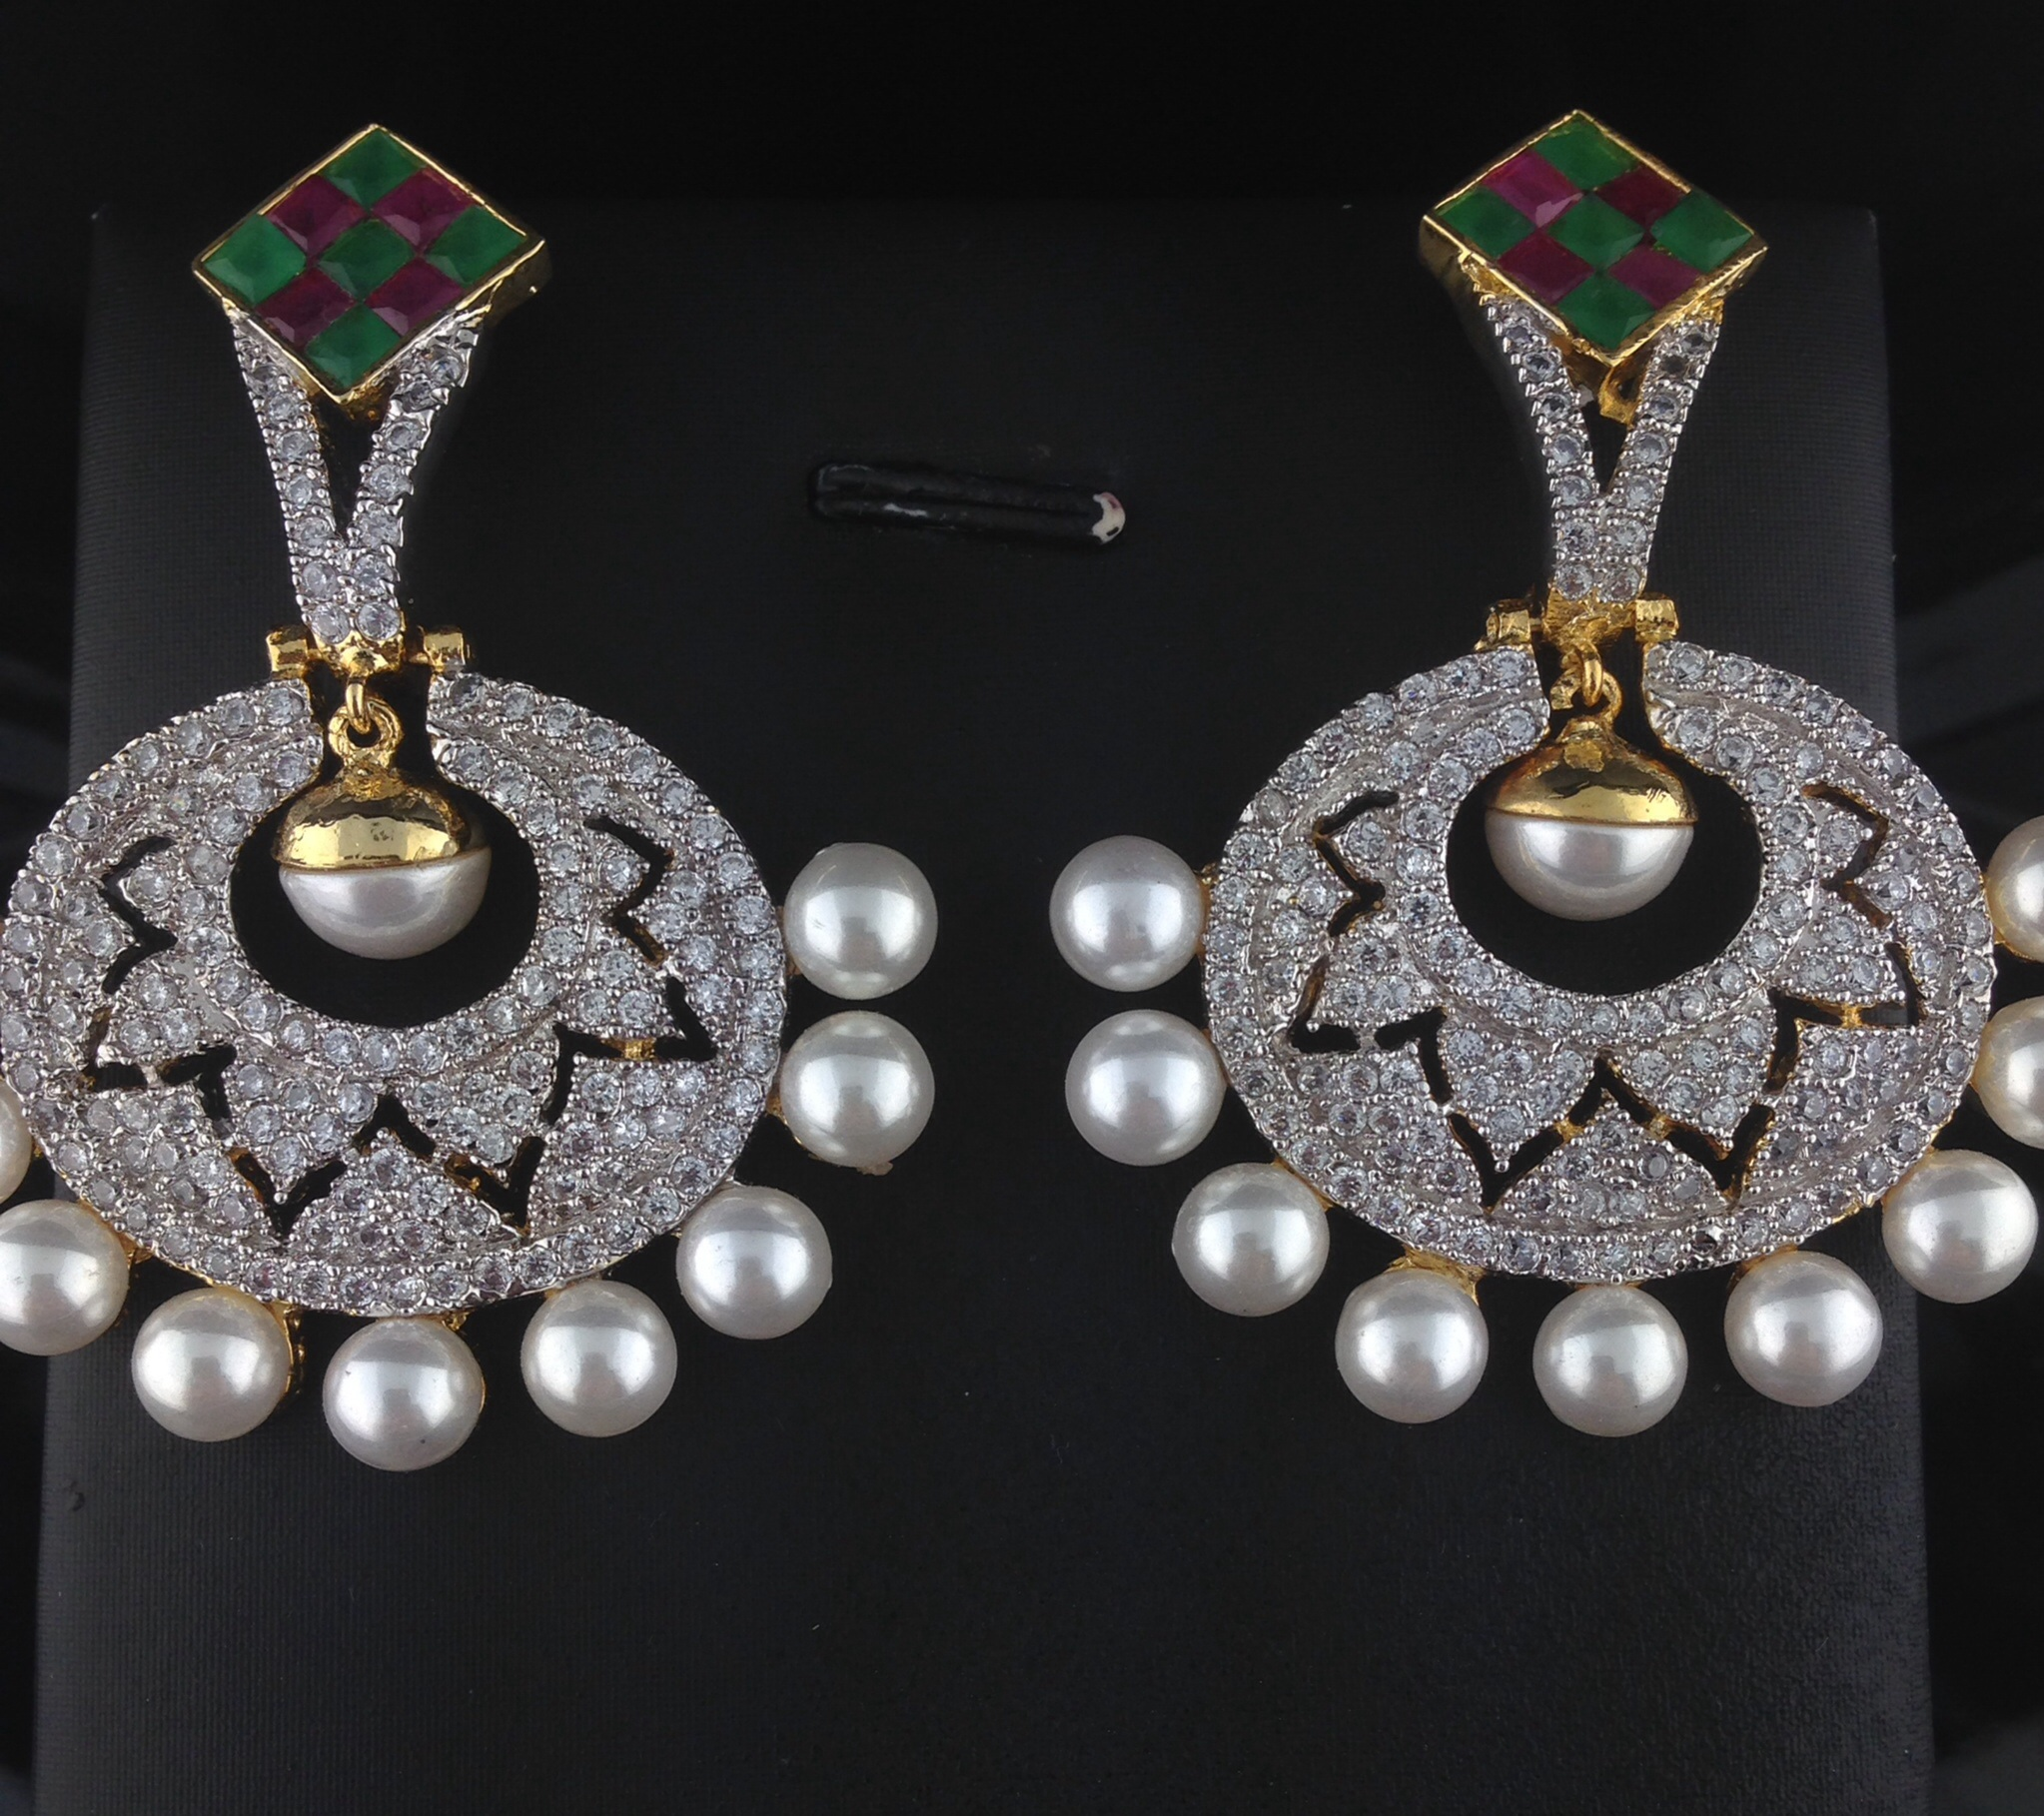 Stunning CZ Earrings With Rubies, Emeralds And Pearls